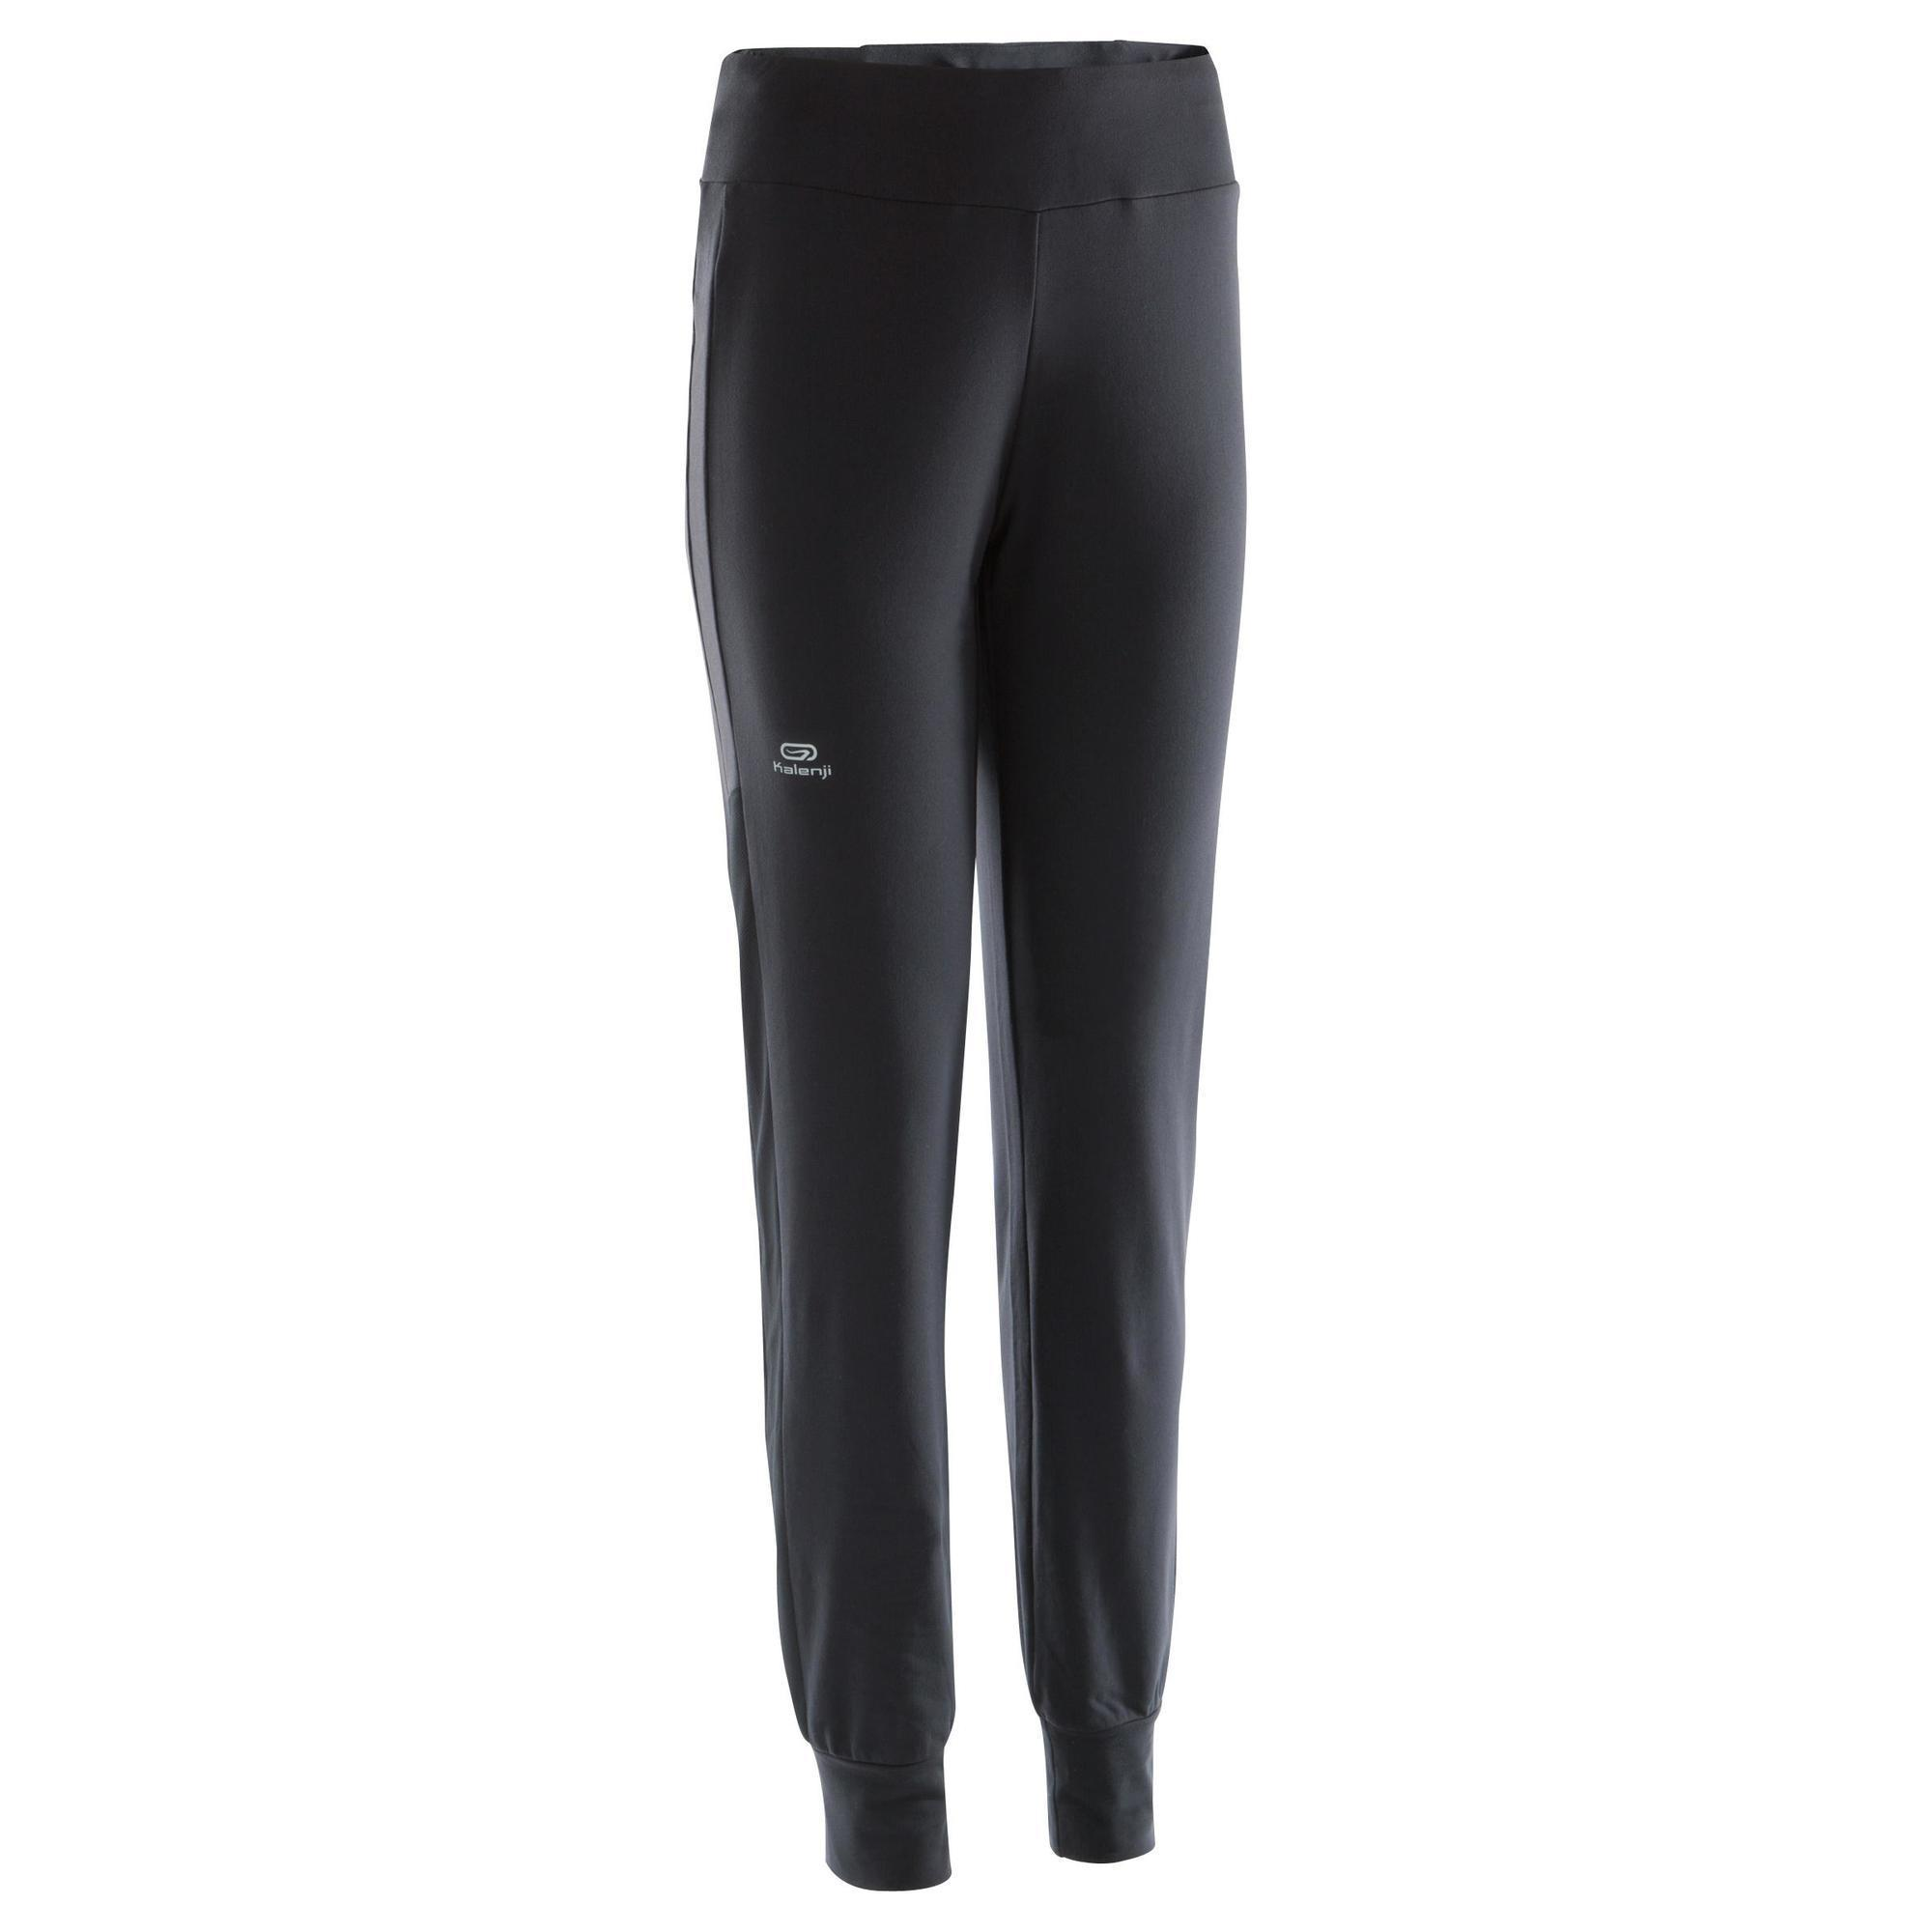 Kalenji Joggingbroek voor dames Run Warm zwart